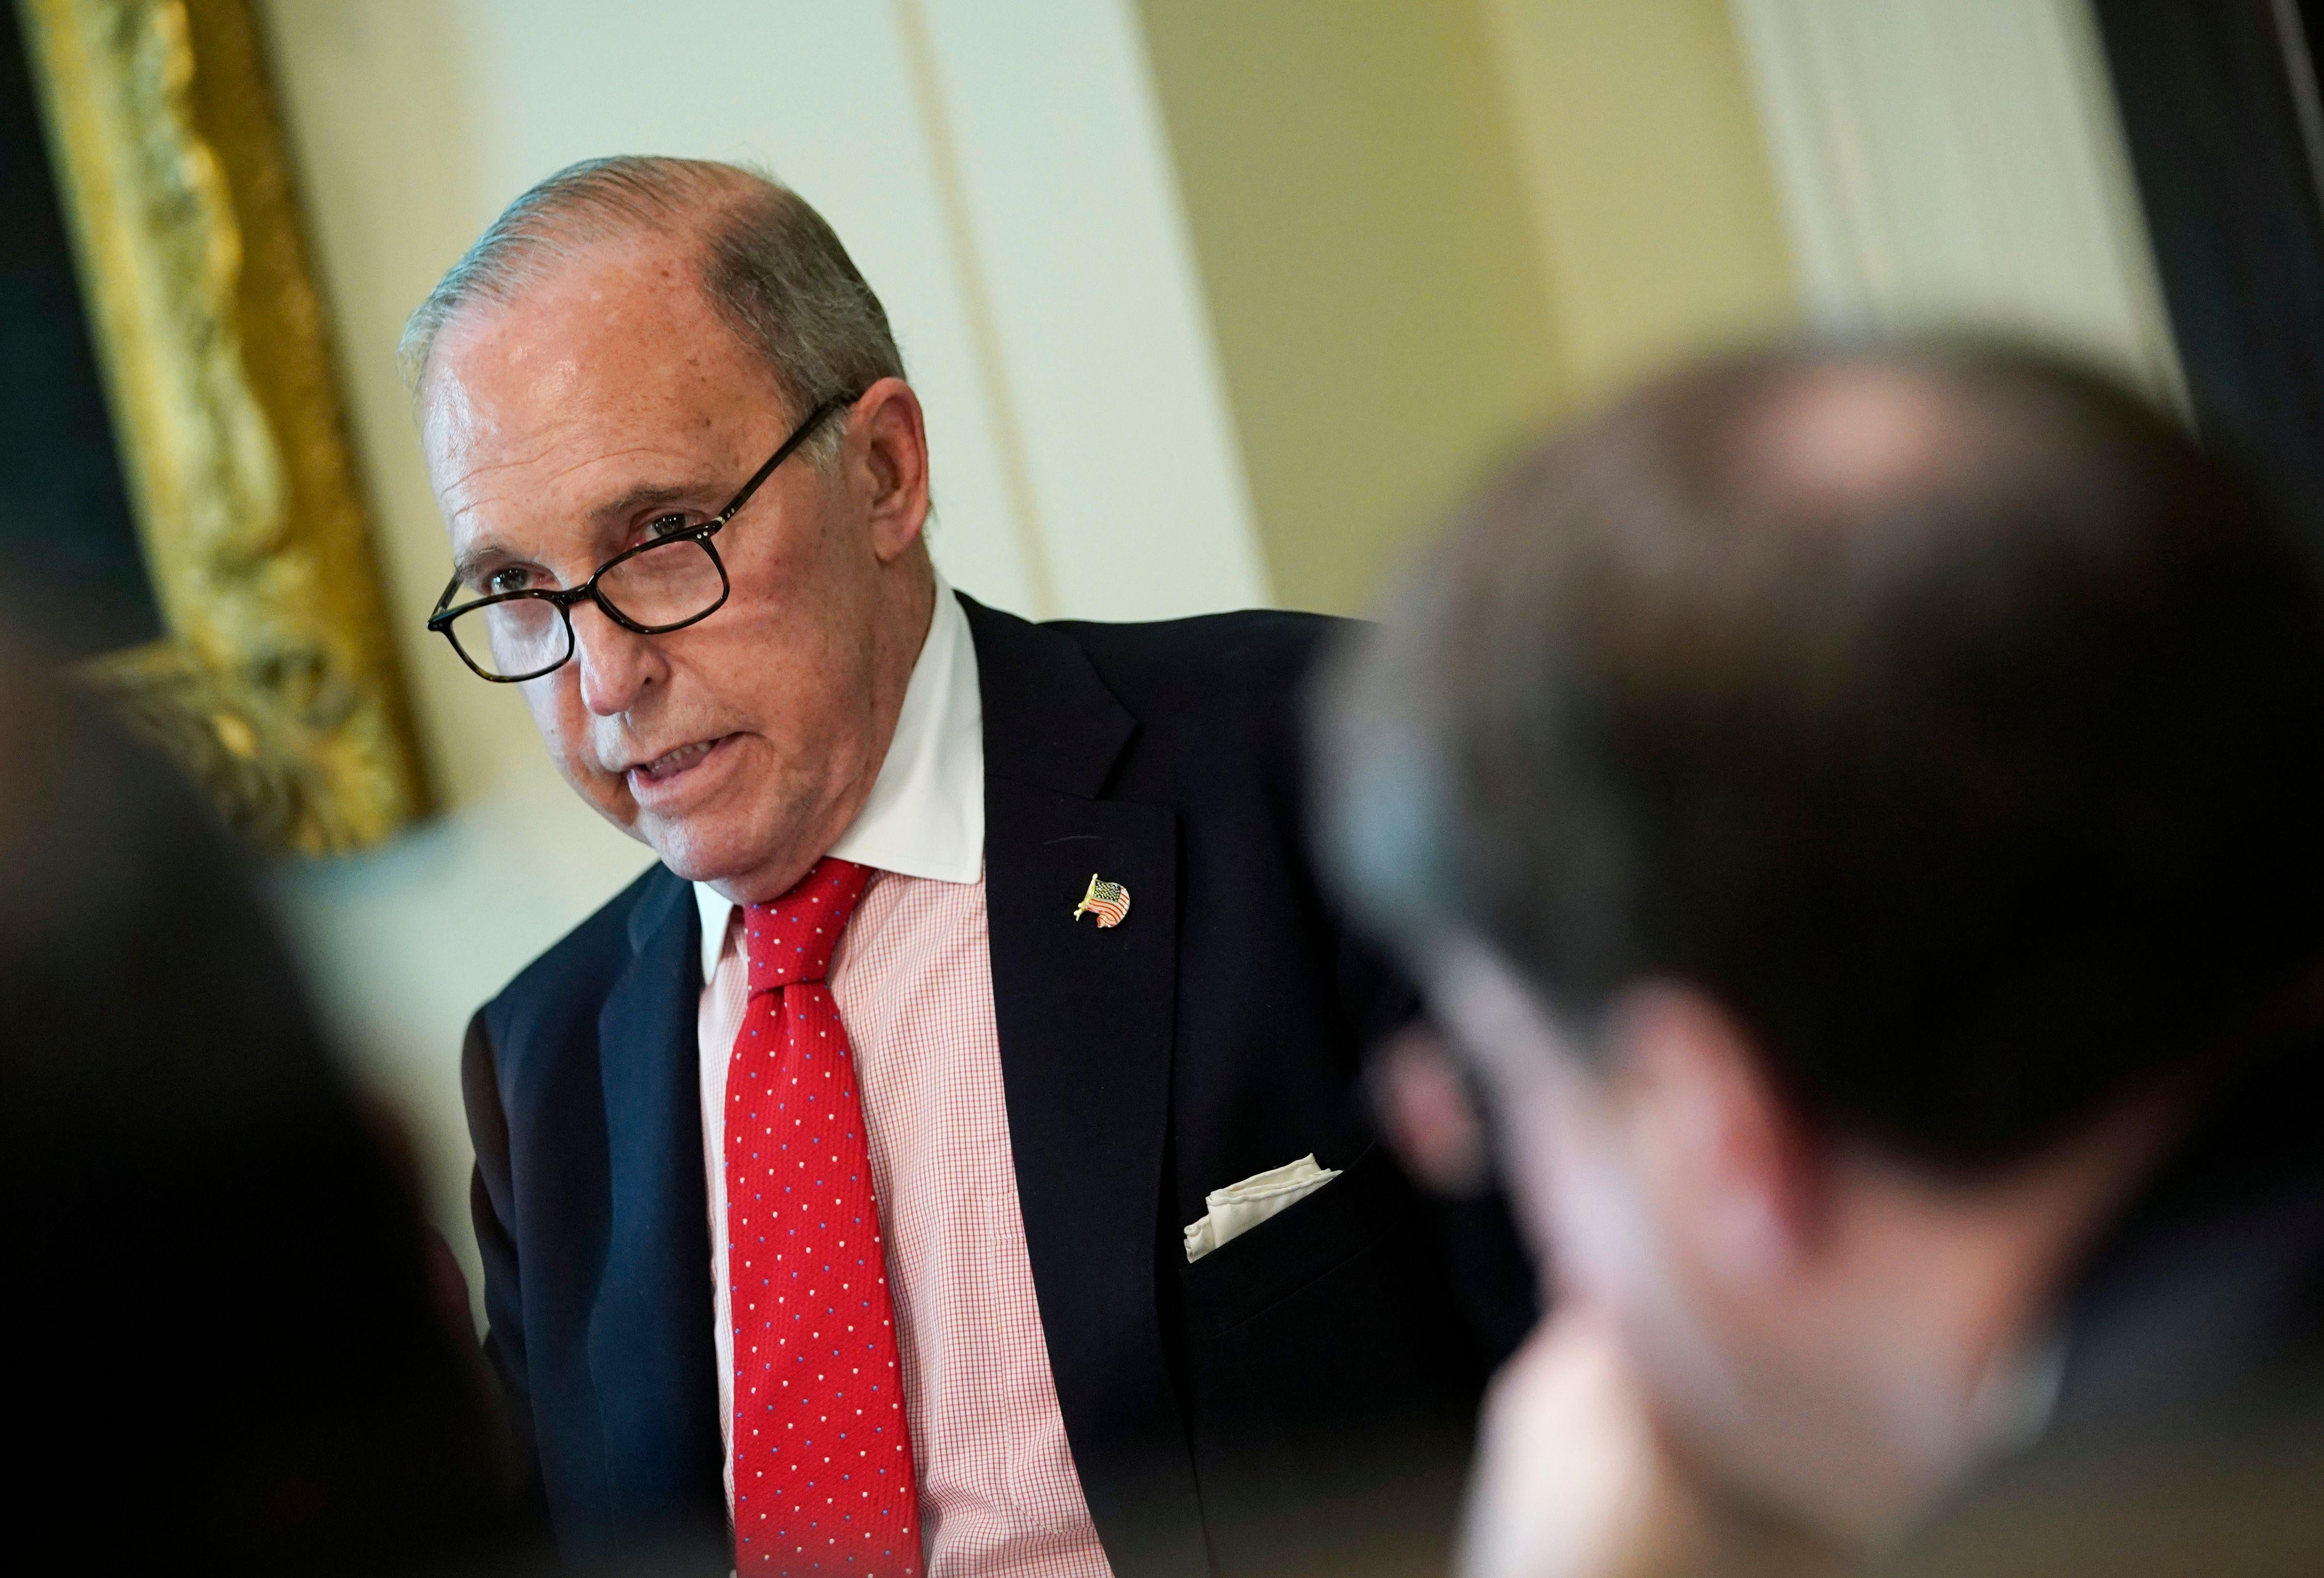 National Economic Council Director Larry Kudlow takes part in a Cabinet meeting in the Cabinet Room of the White House on August 16, 2018 in Washington, DC. (Photo by MANDEL NGAN / AFP)        (Photo credit should read MANDEL NGAN/AFP/Getty Images)